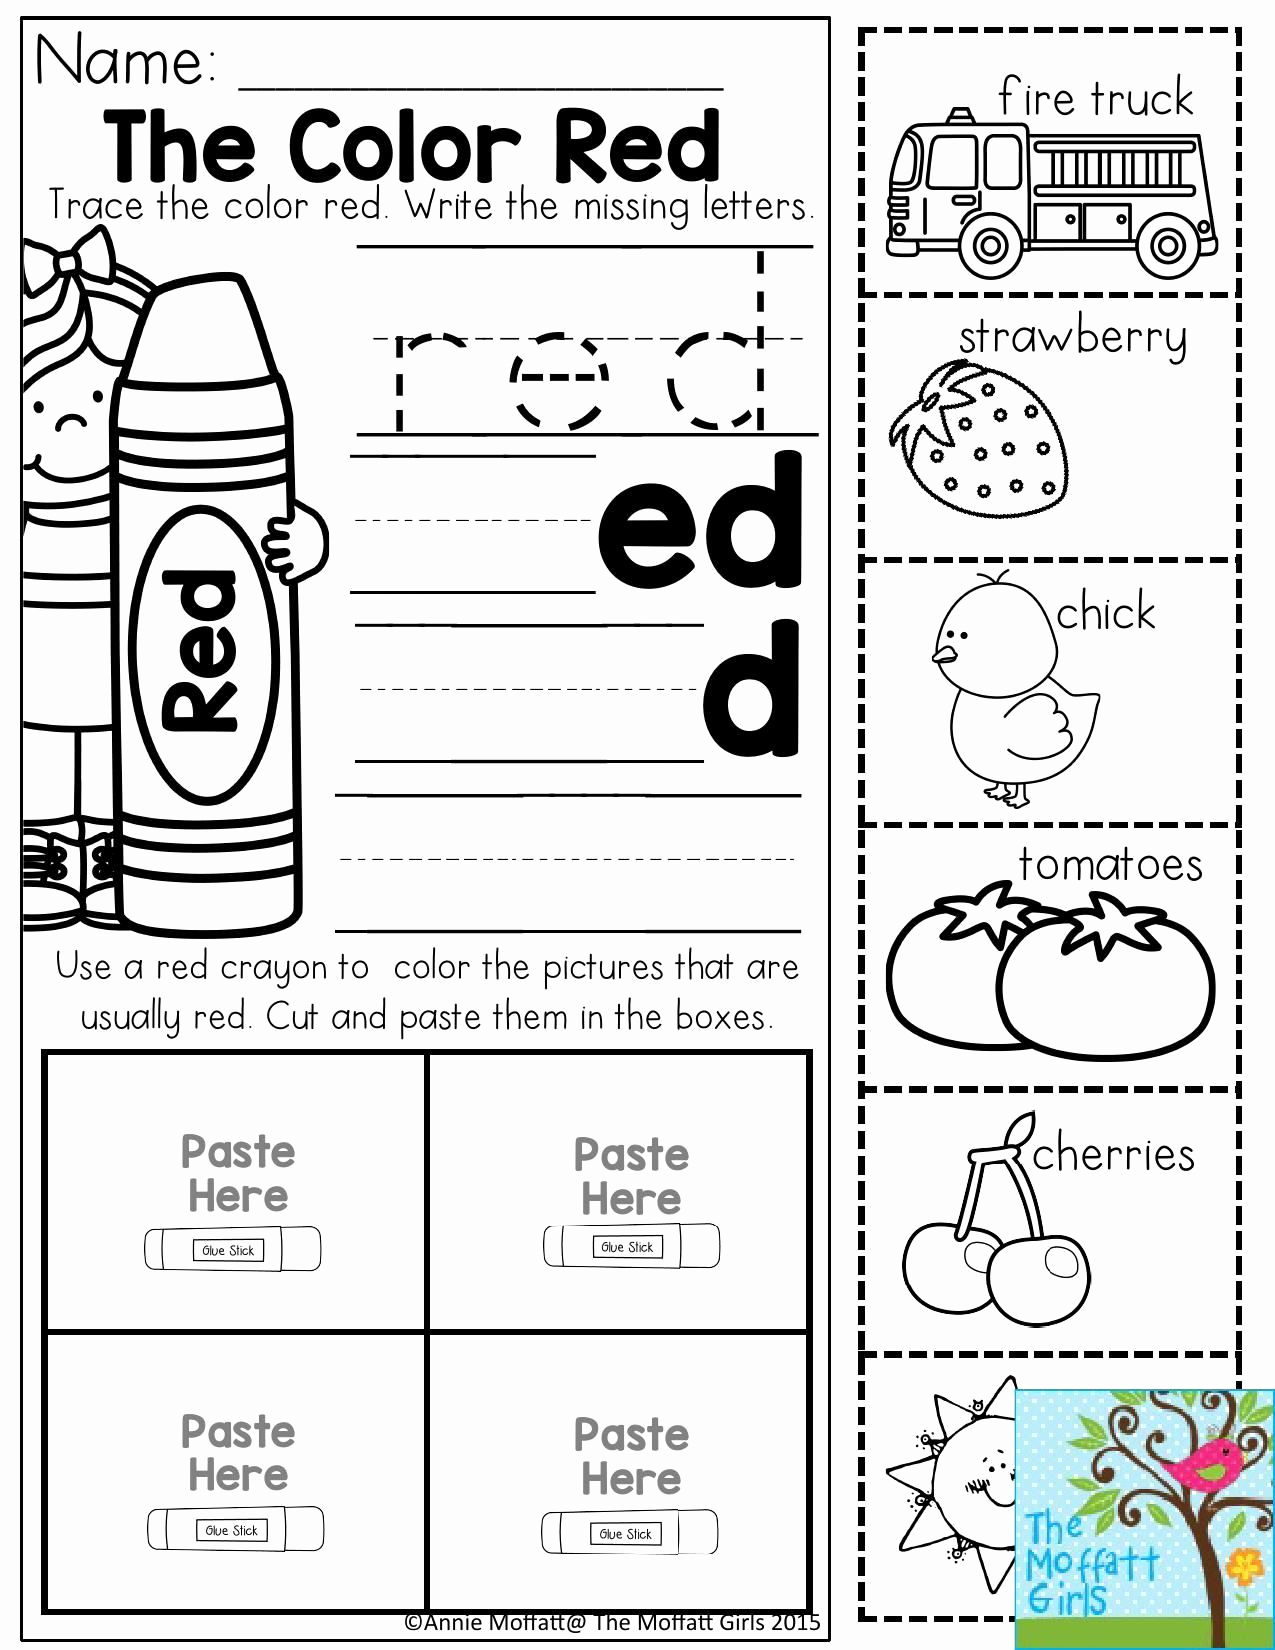 Color Red Worksheets for toddlers Awesome Pin On Preschool